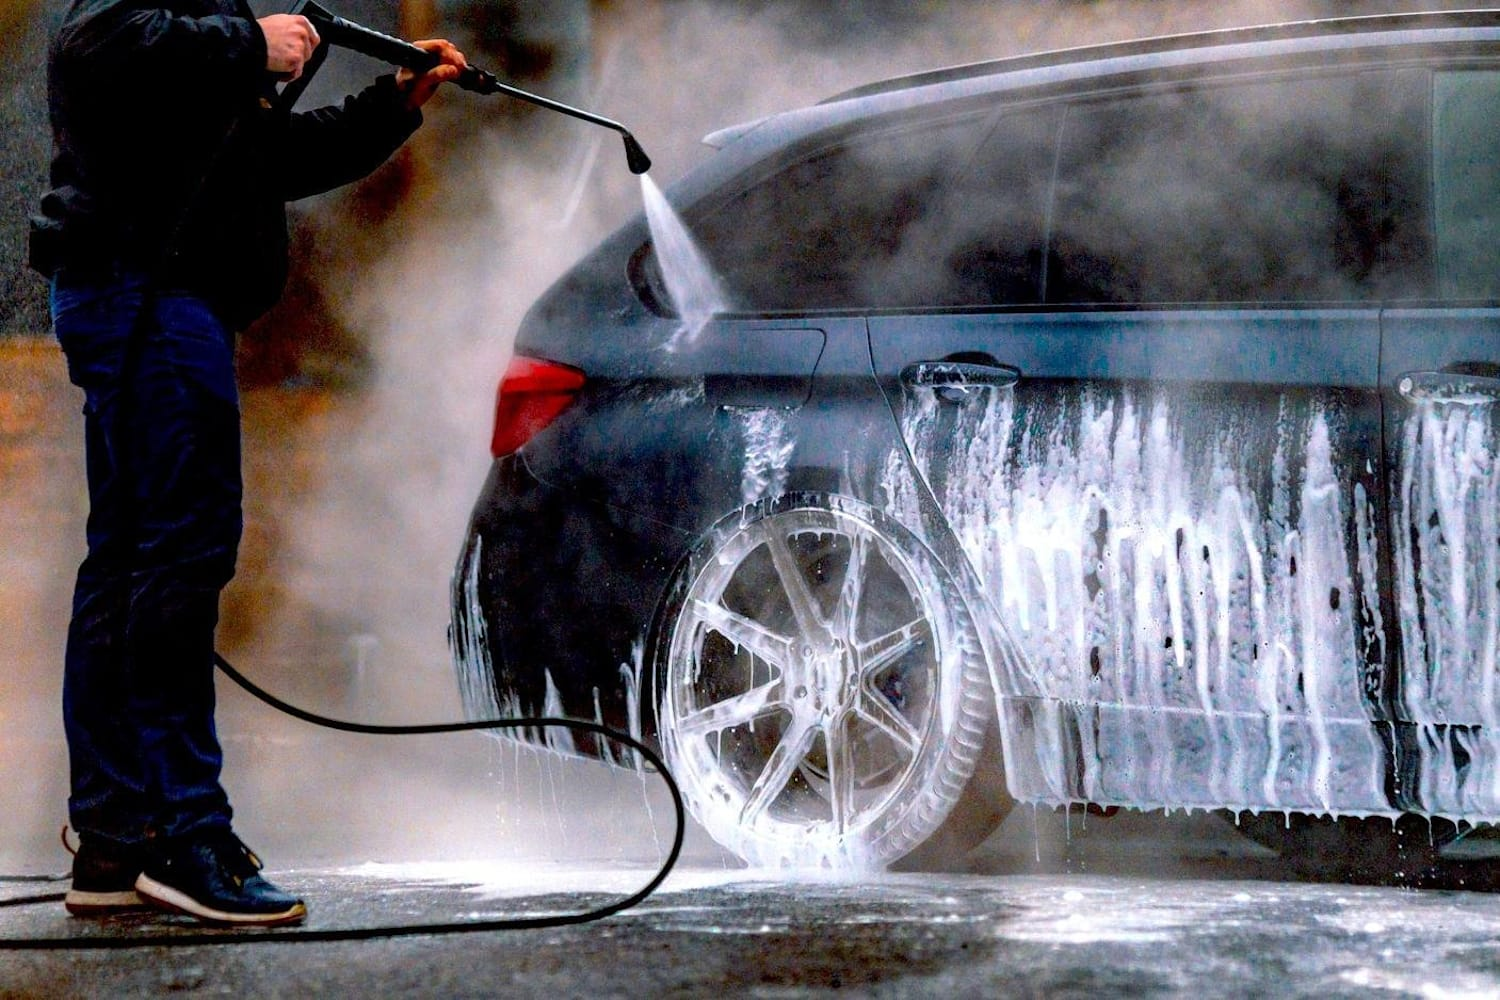 How to wash a car: Everything you need to know